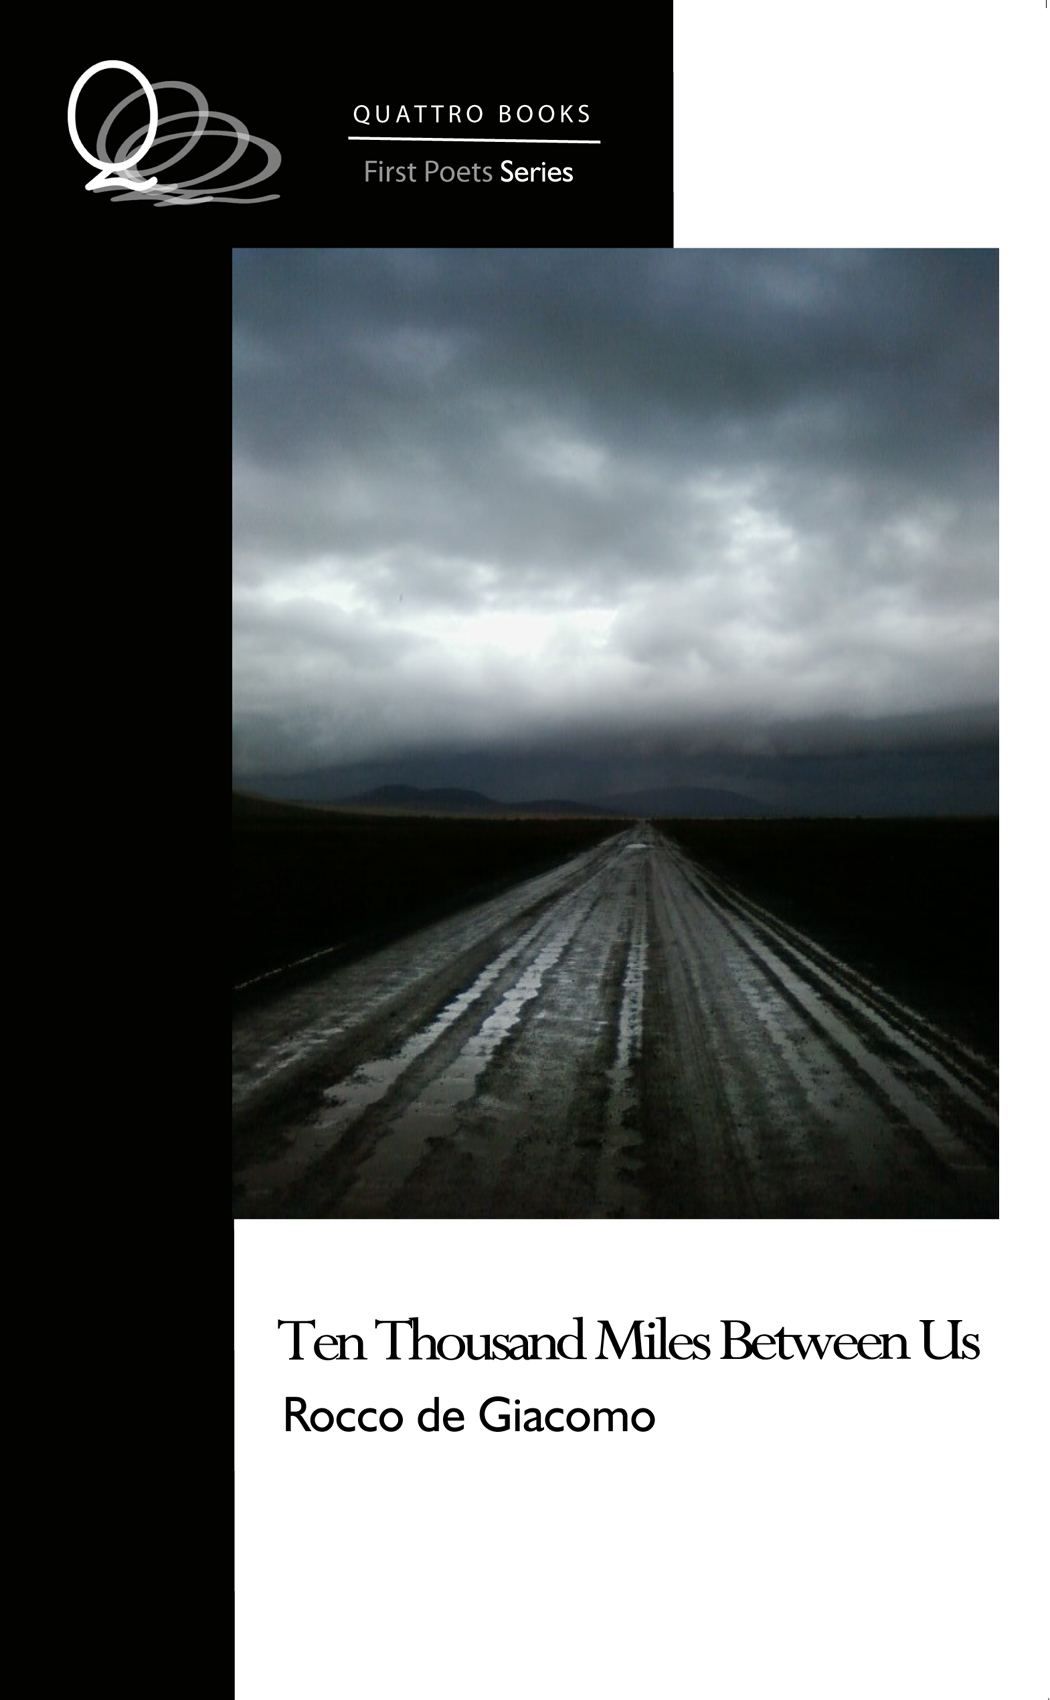 Ten Thousand Miles Between Us (cover) by Rocco de Giacomo (Quattro Books)